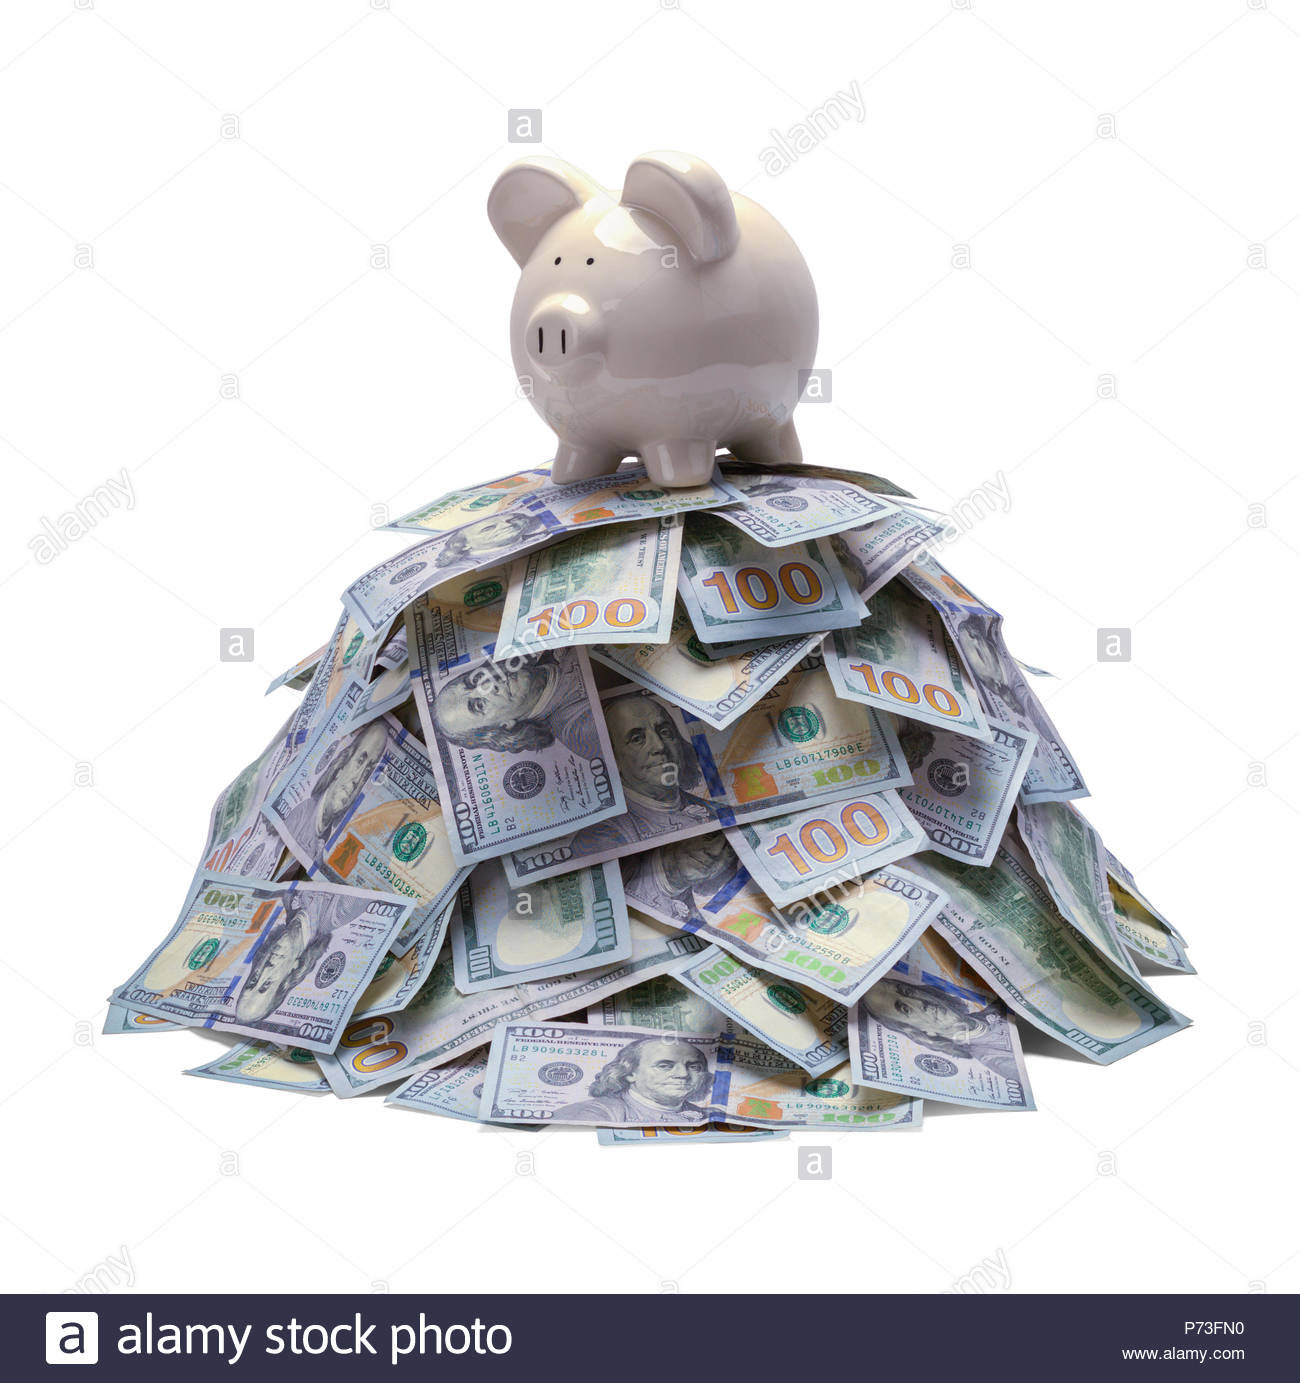 Pile of Money with Piggy Bank on Top Isolated on White. - Stock Image